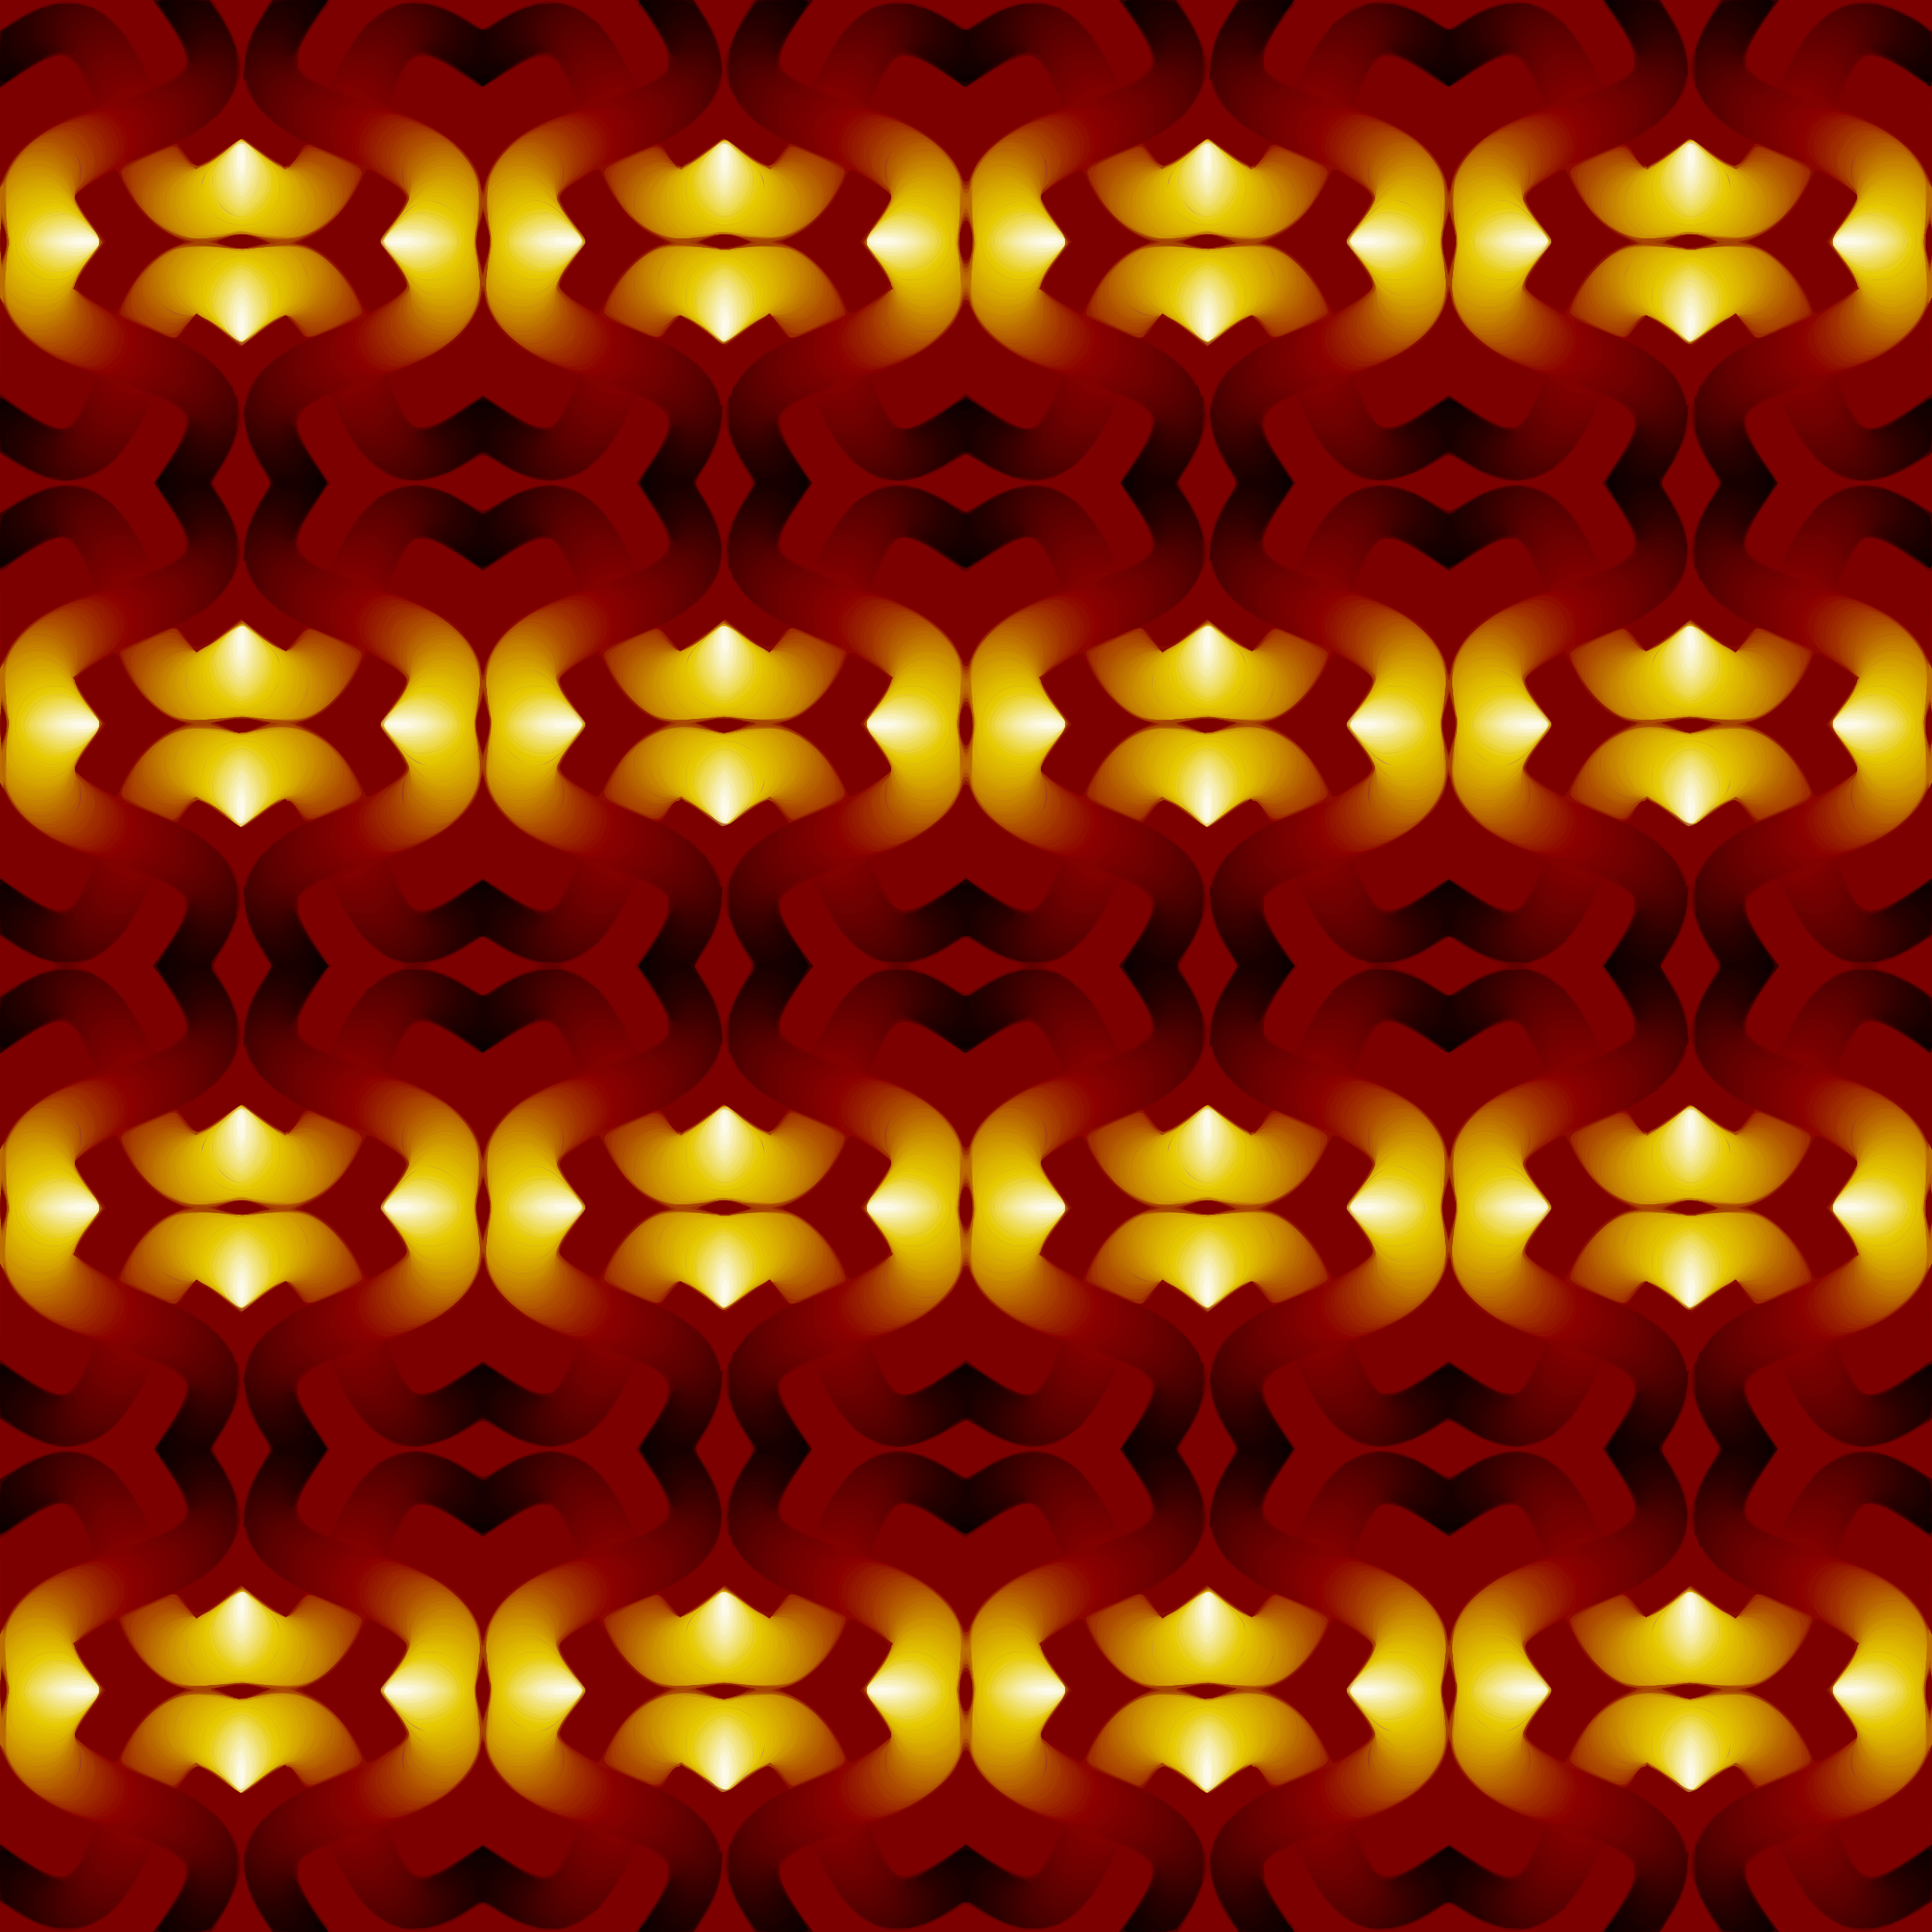 Background pattern 7 by Firkin